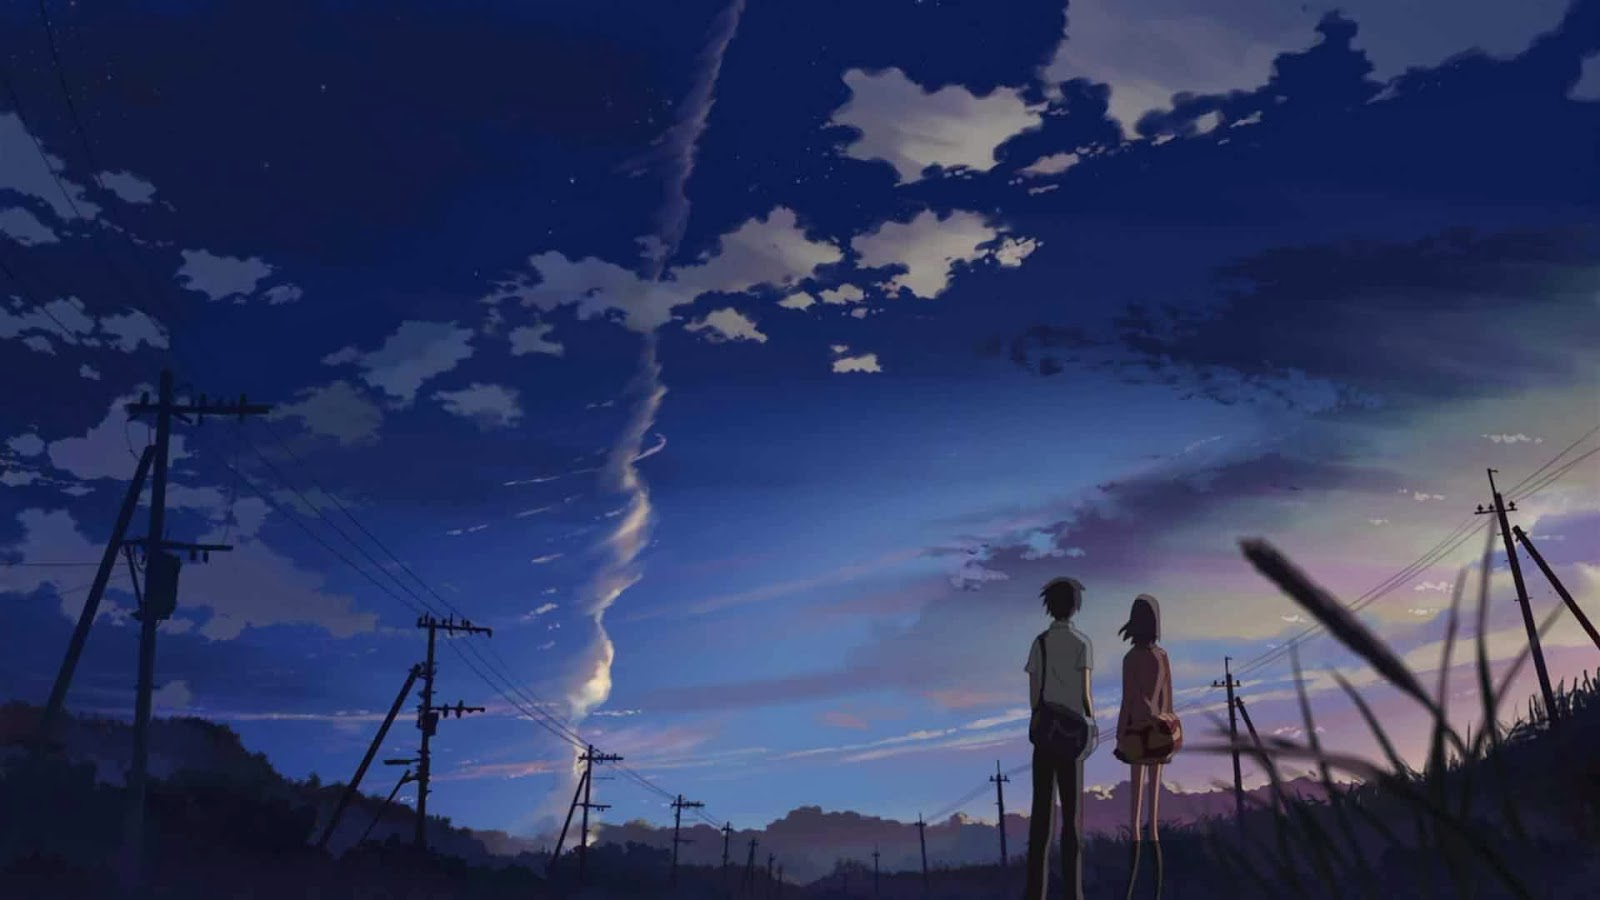 Hd Wallpapers Blog: 5 Centimeters Per Second